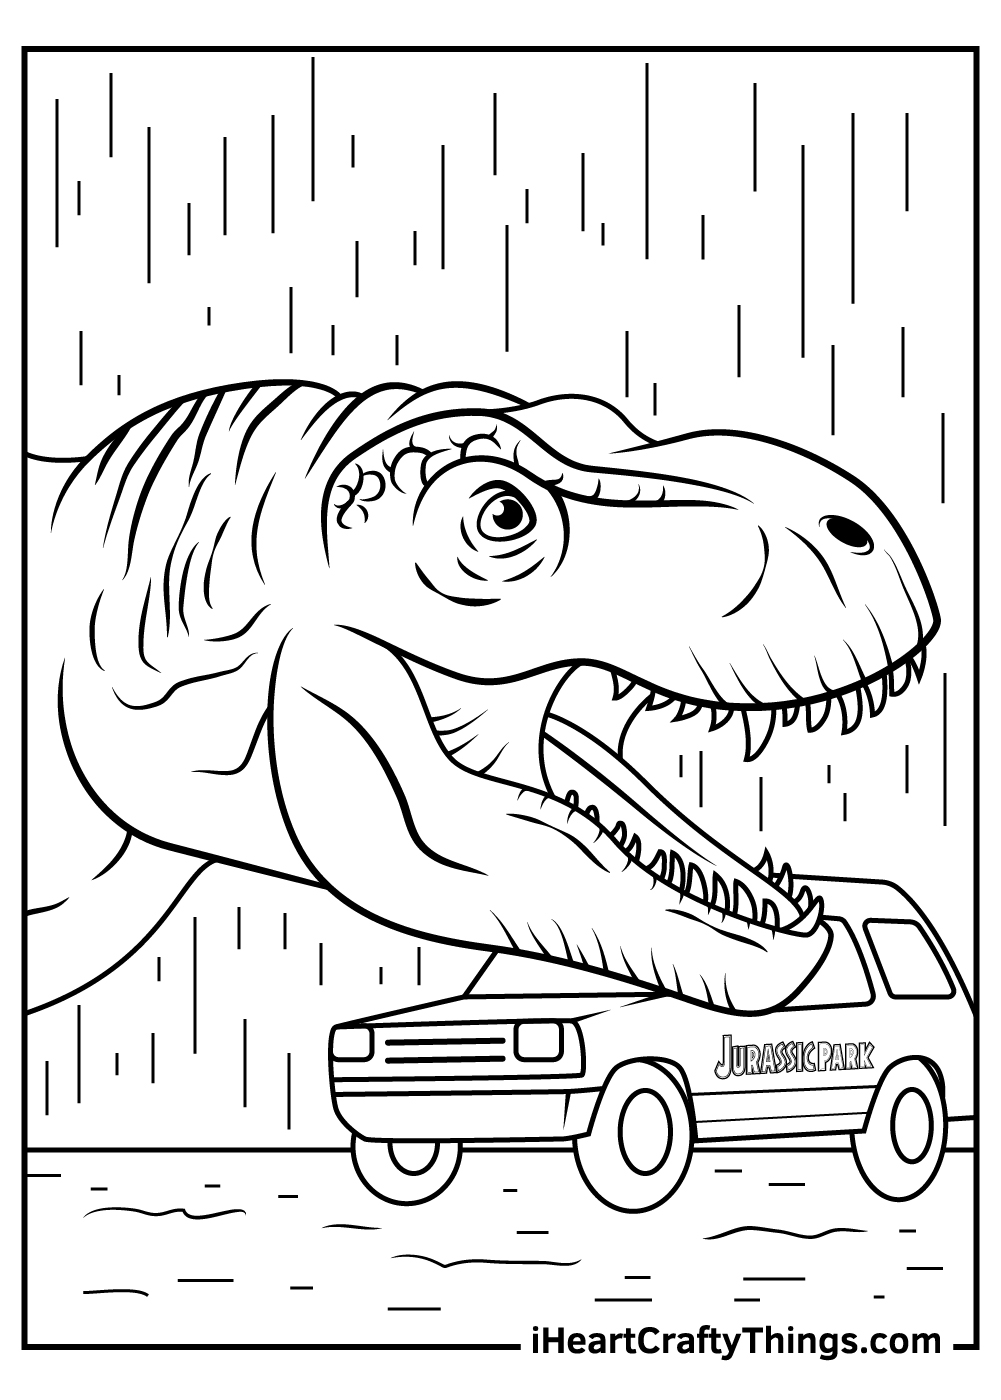 lego dinosaur jurassic park coloring pages printable